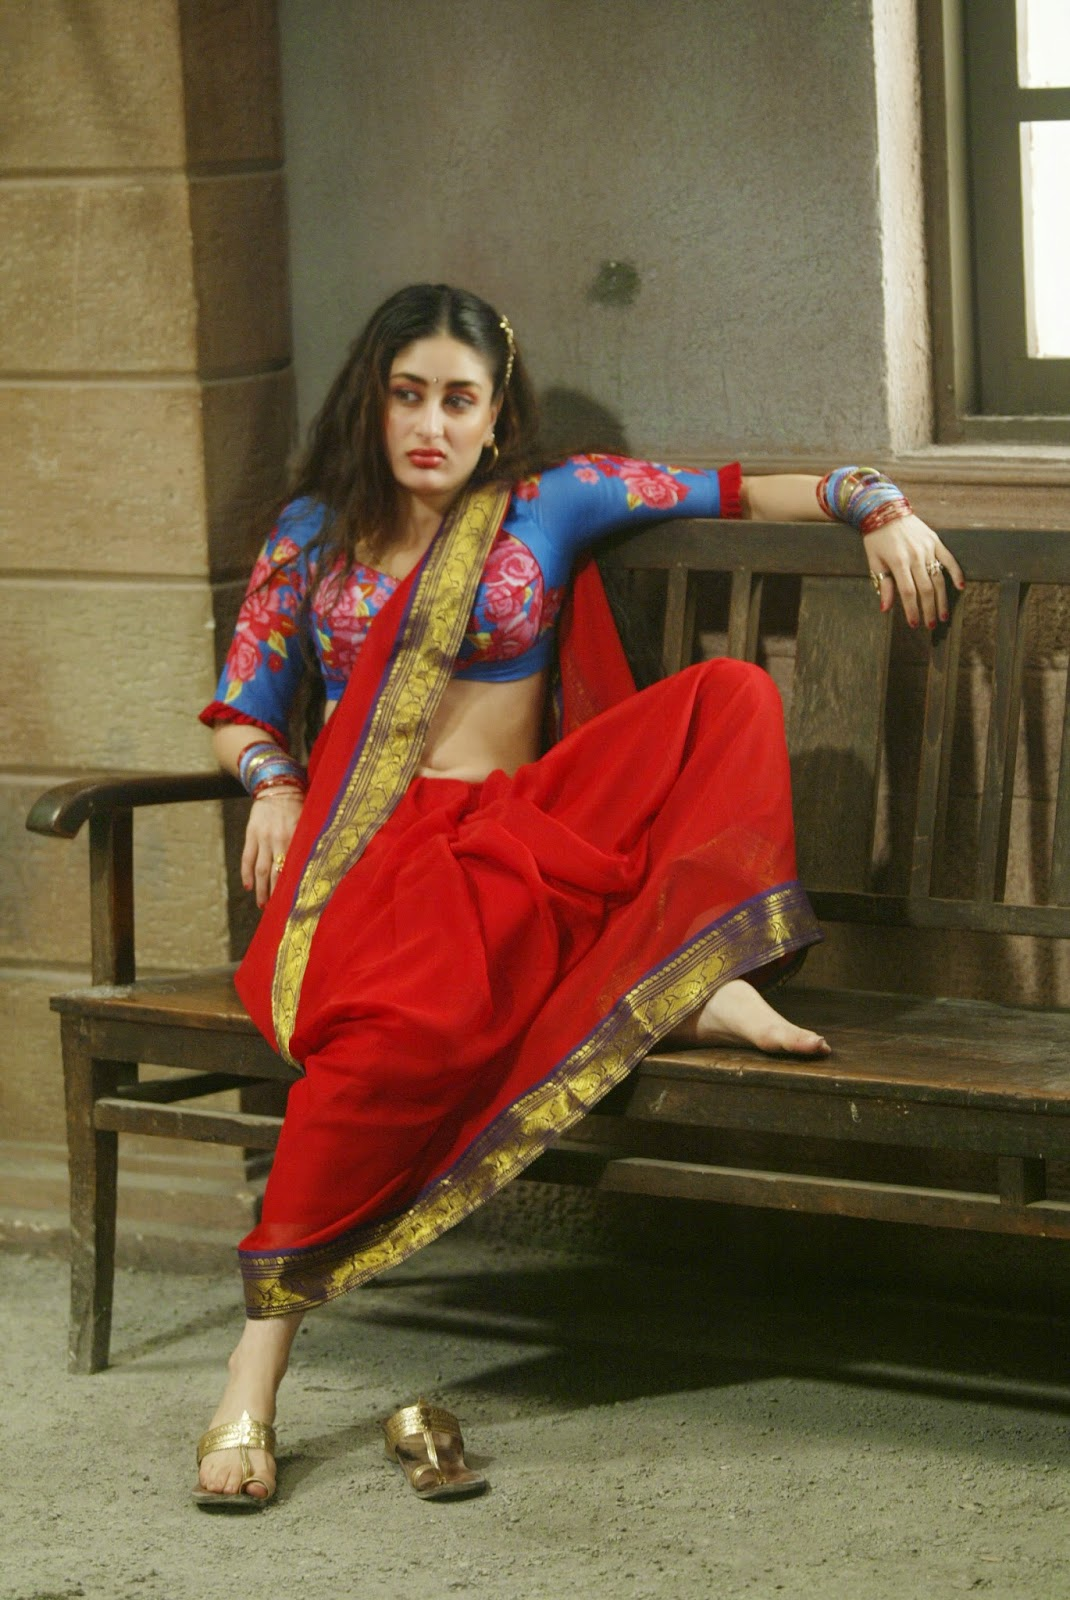 High Quality Bollywood Celebrity Pictures Kareena Kapoor -2206